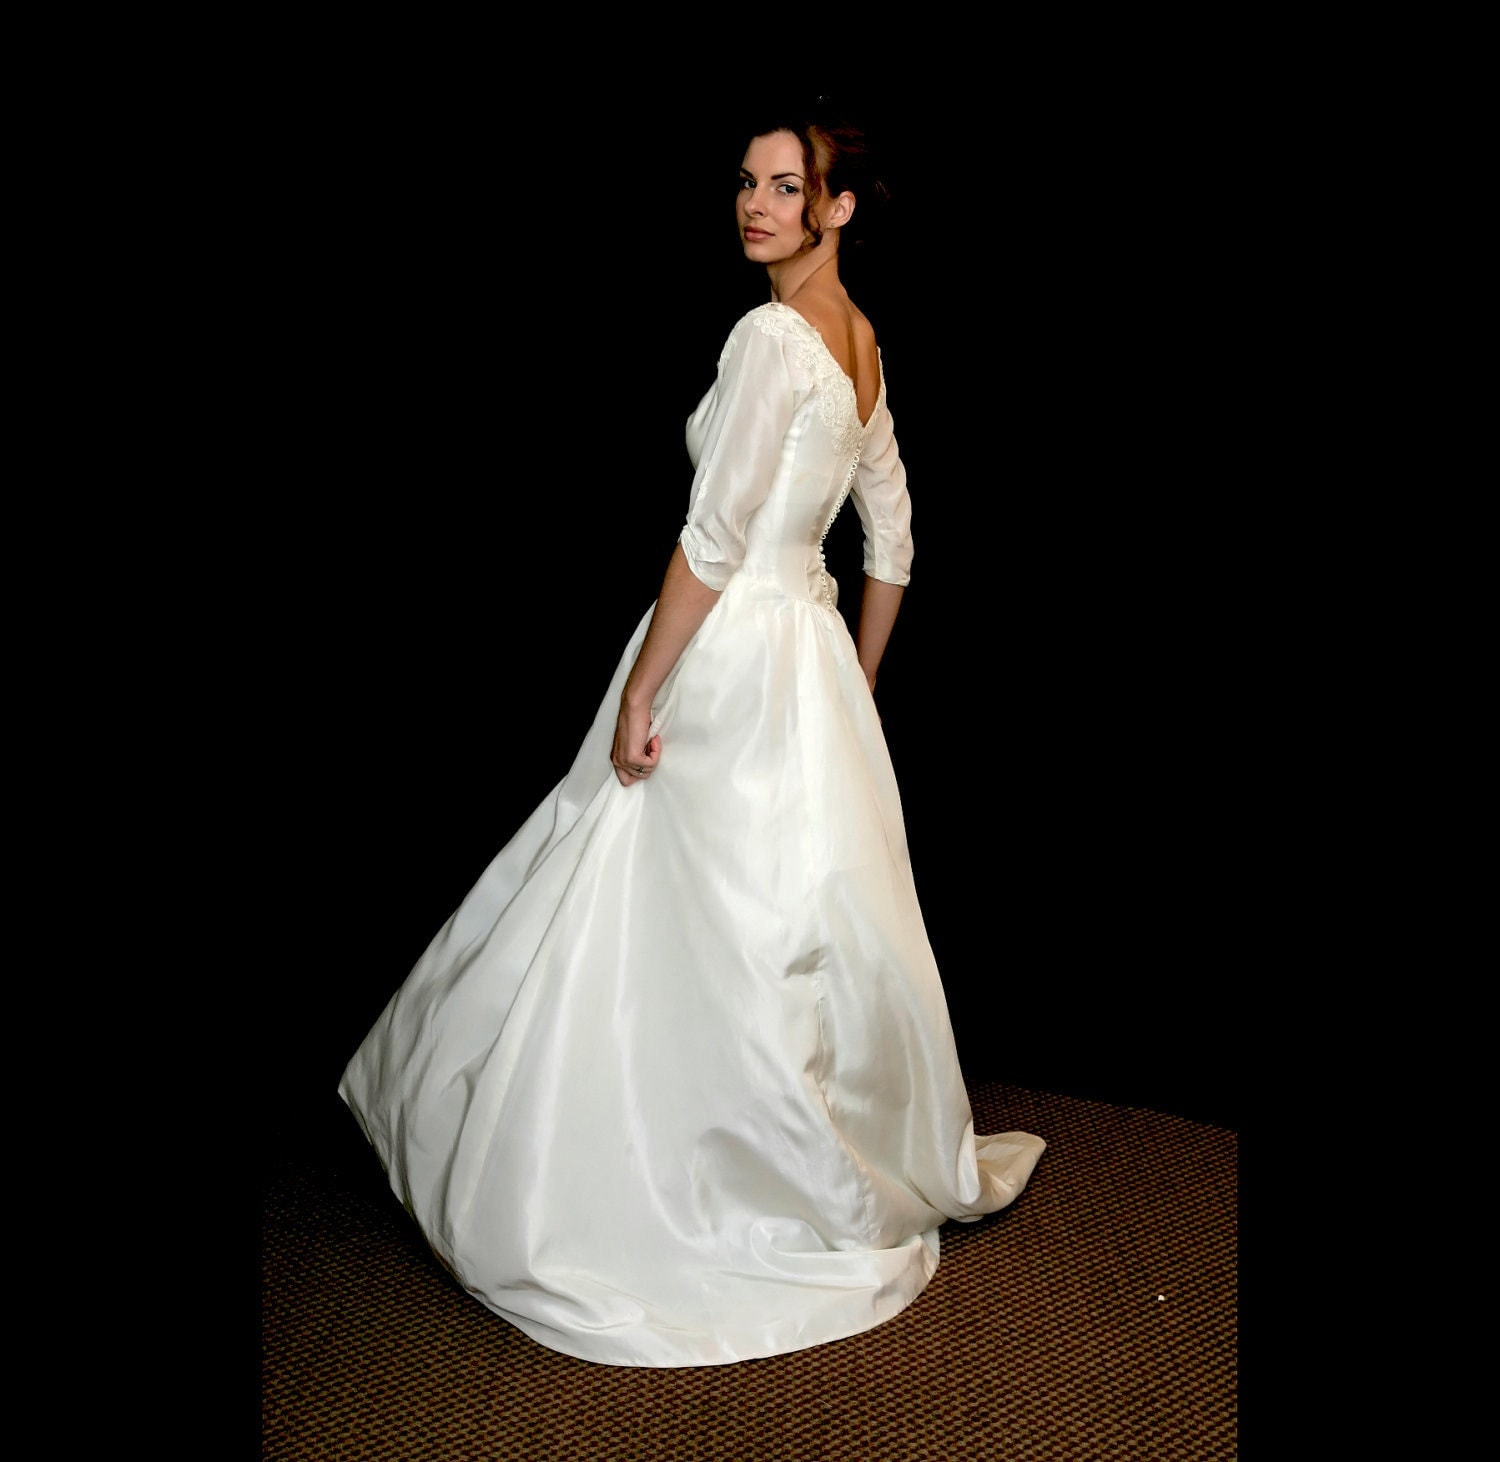 Wedding Dresses Boston: Priscilla Of Boston Vintage Wedding Dress S To M By